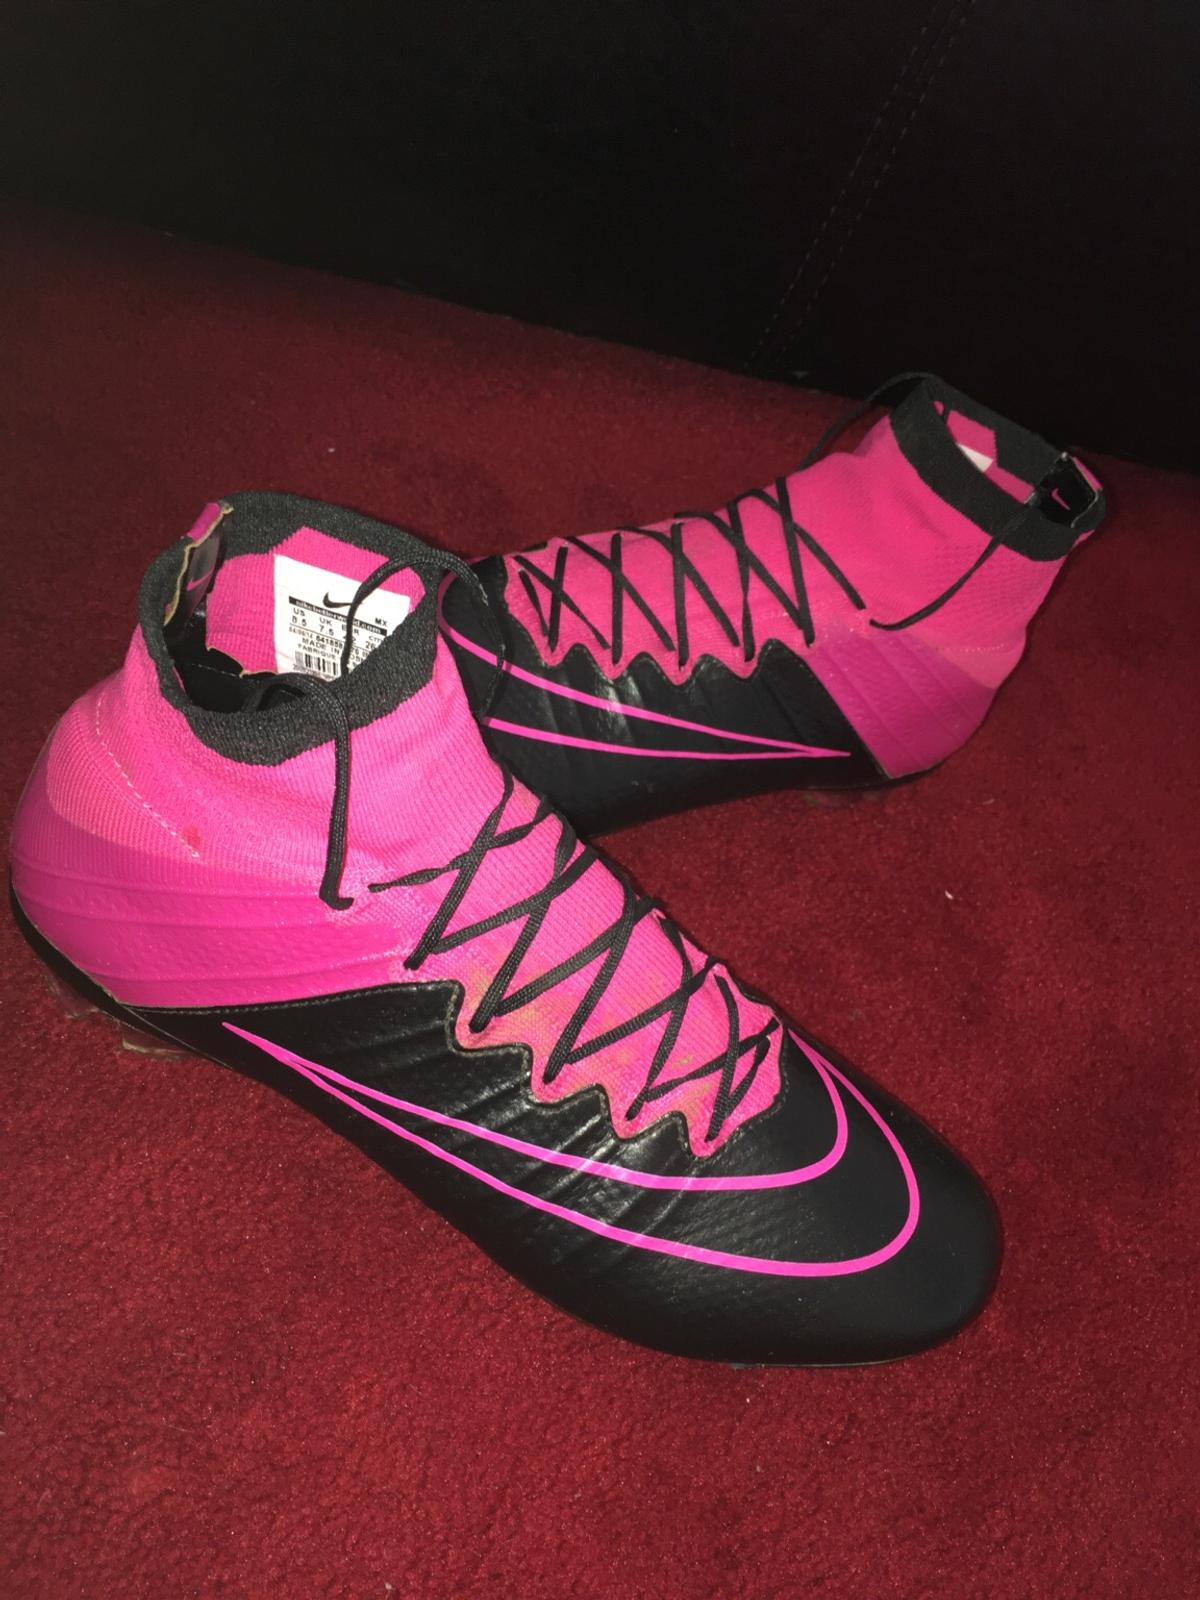 new photos c5121 19ad0 Nike mercurial superfly 4 in EN8 Cheshunt for £25.00 for sale - Shpock